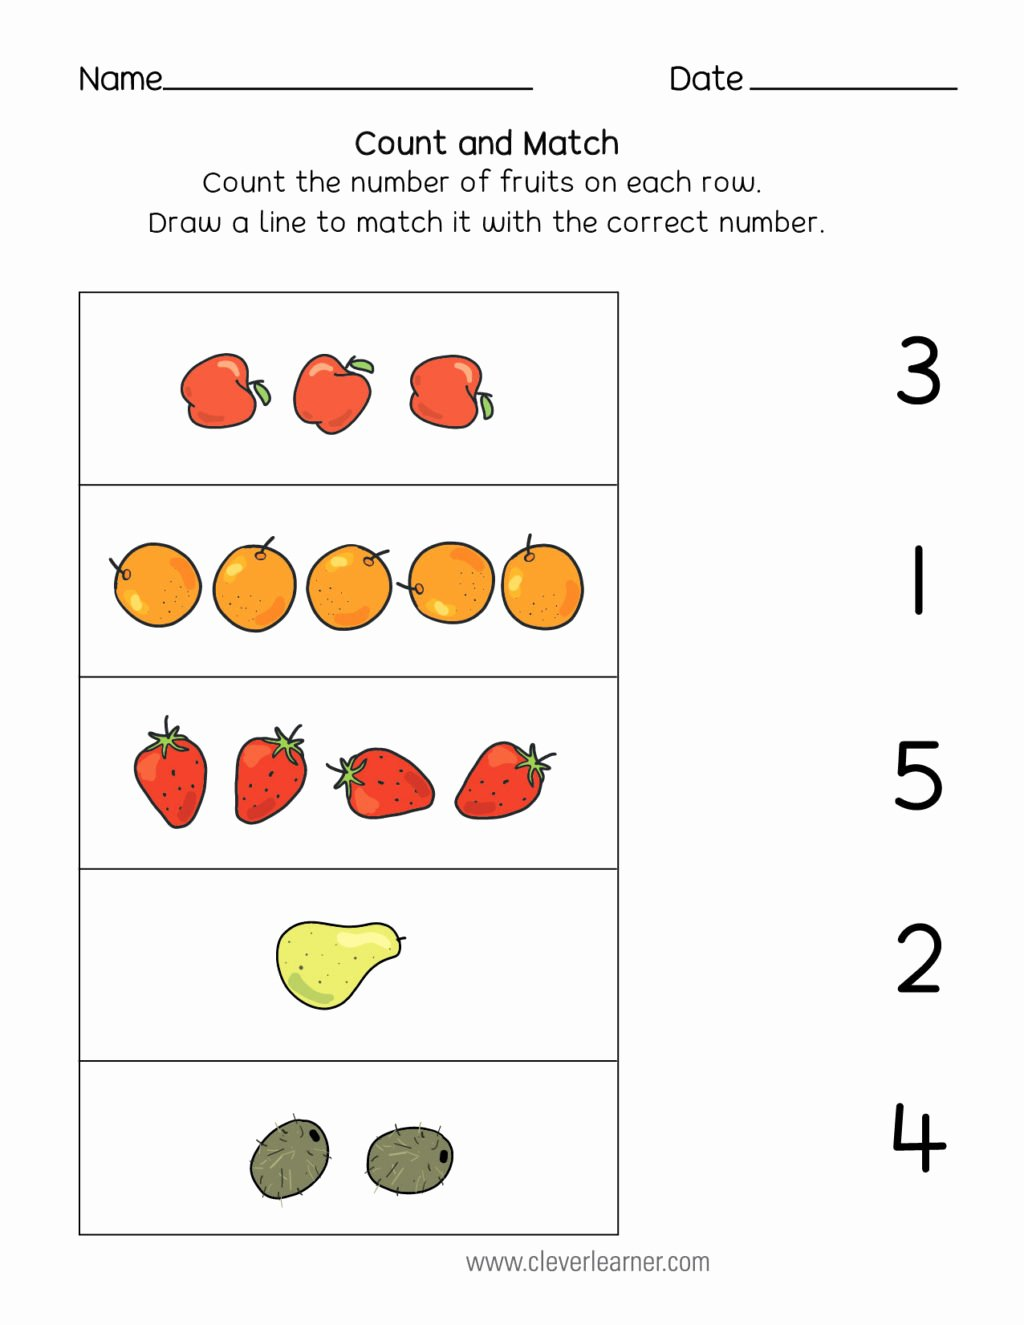 Printable Matching Worksheets for Preschoolers New Worksheet Count and Match Matching Worksheets for